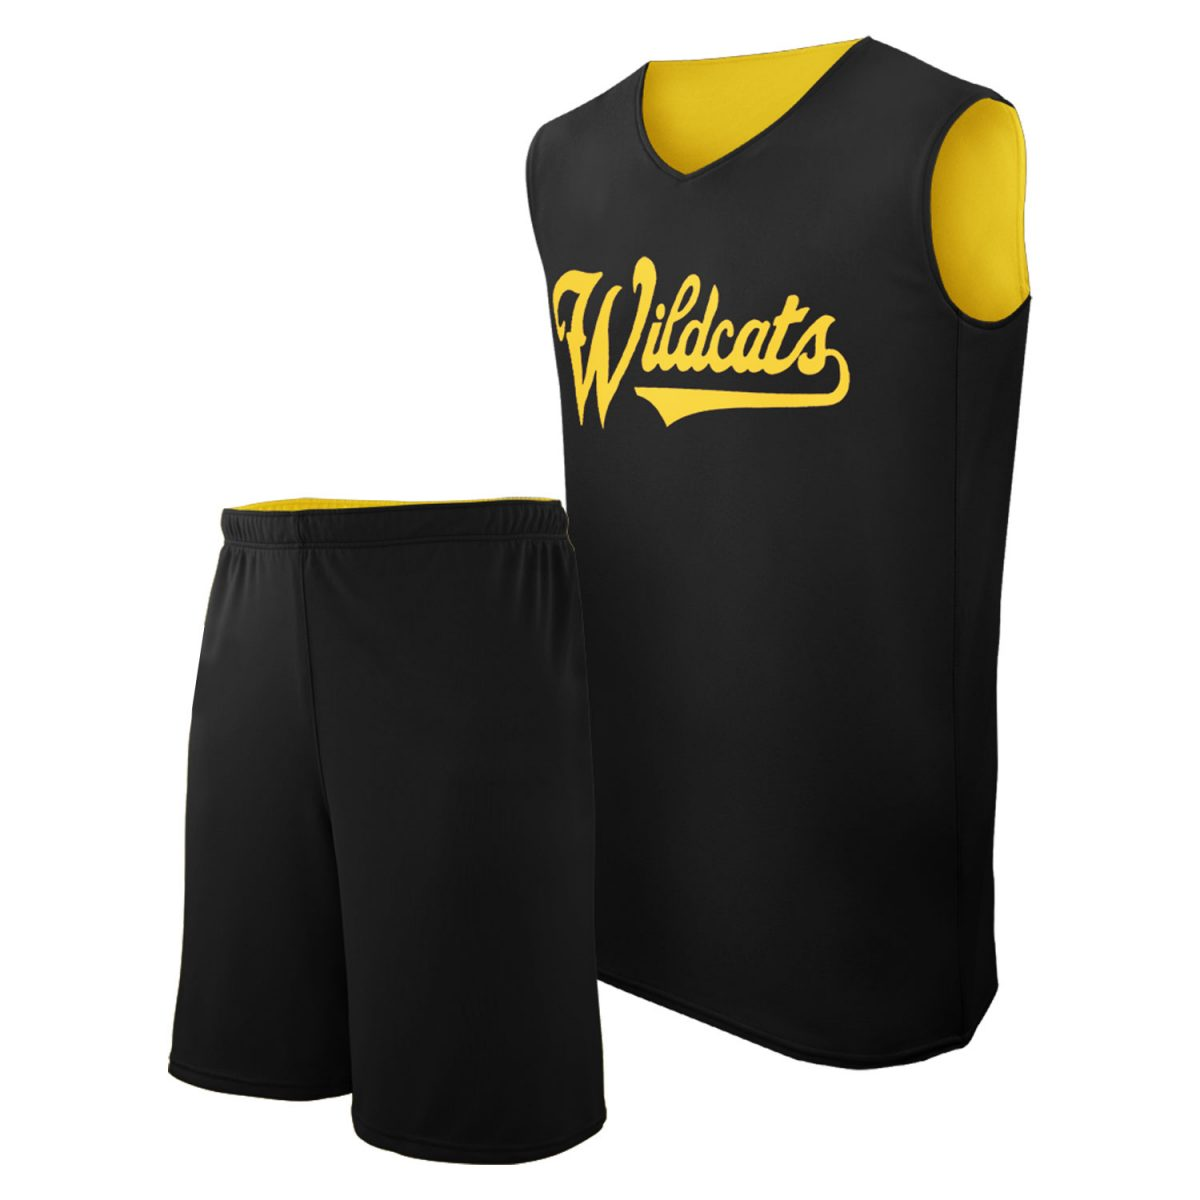 Boys Basketball Uniforms Manufacturers in Jalandhar in Argentina